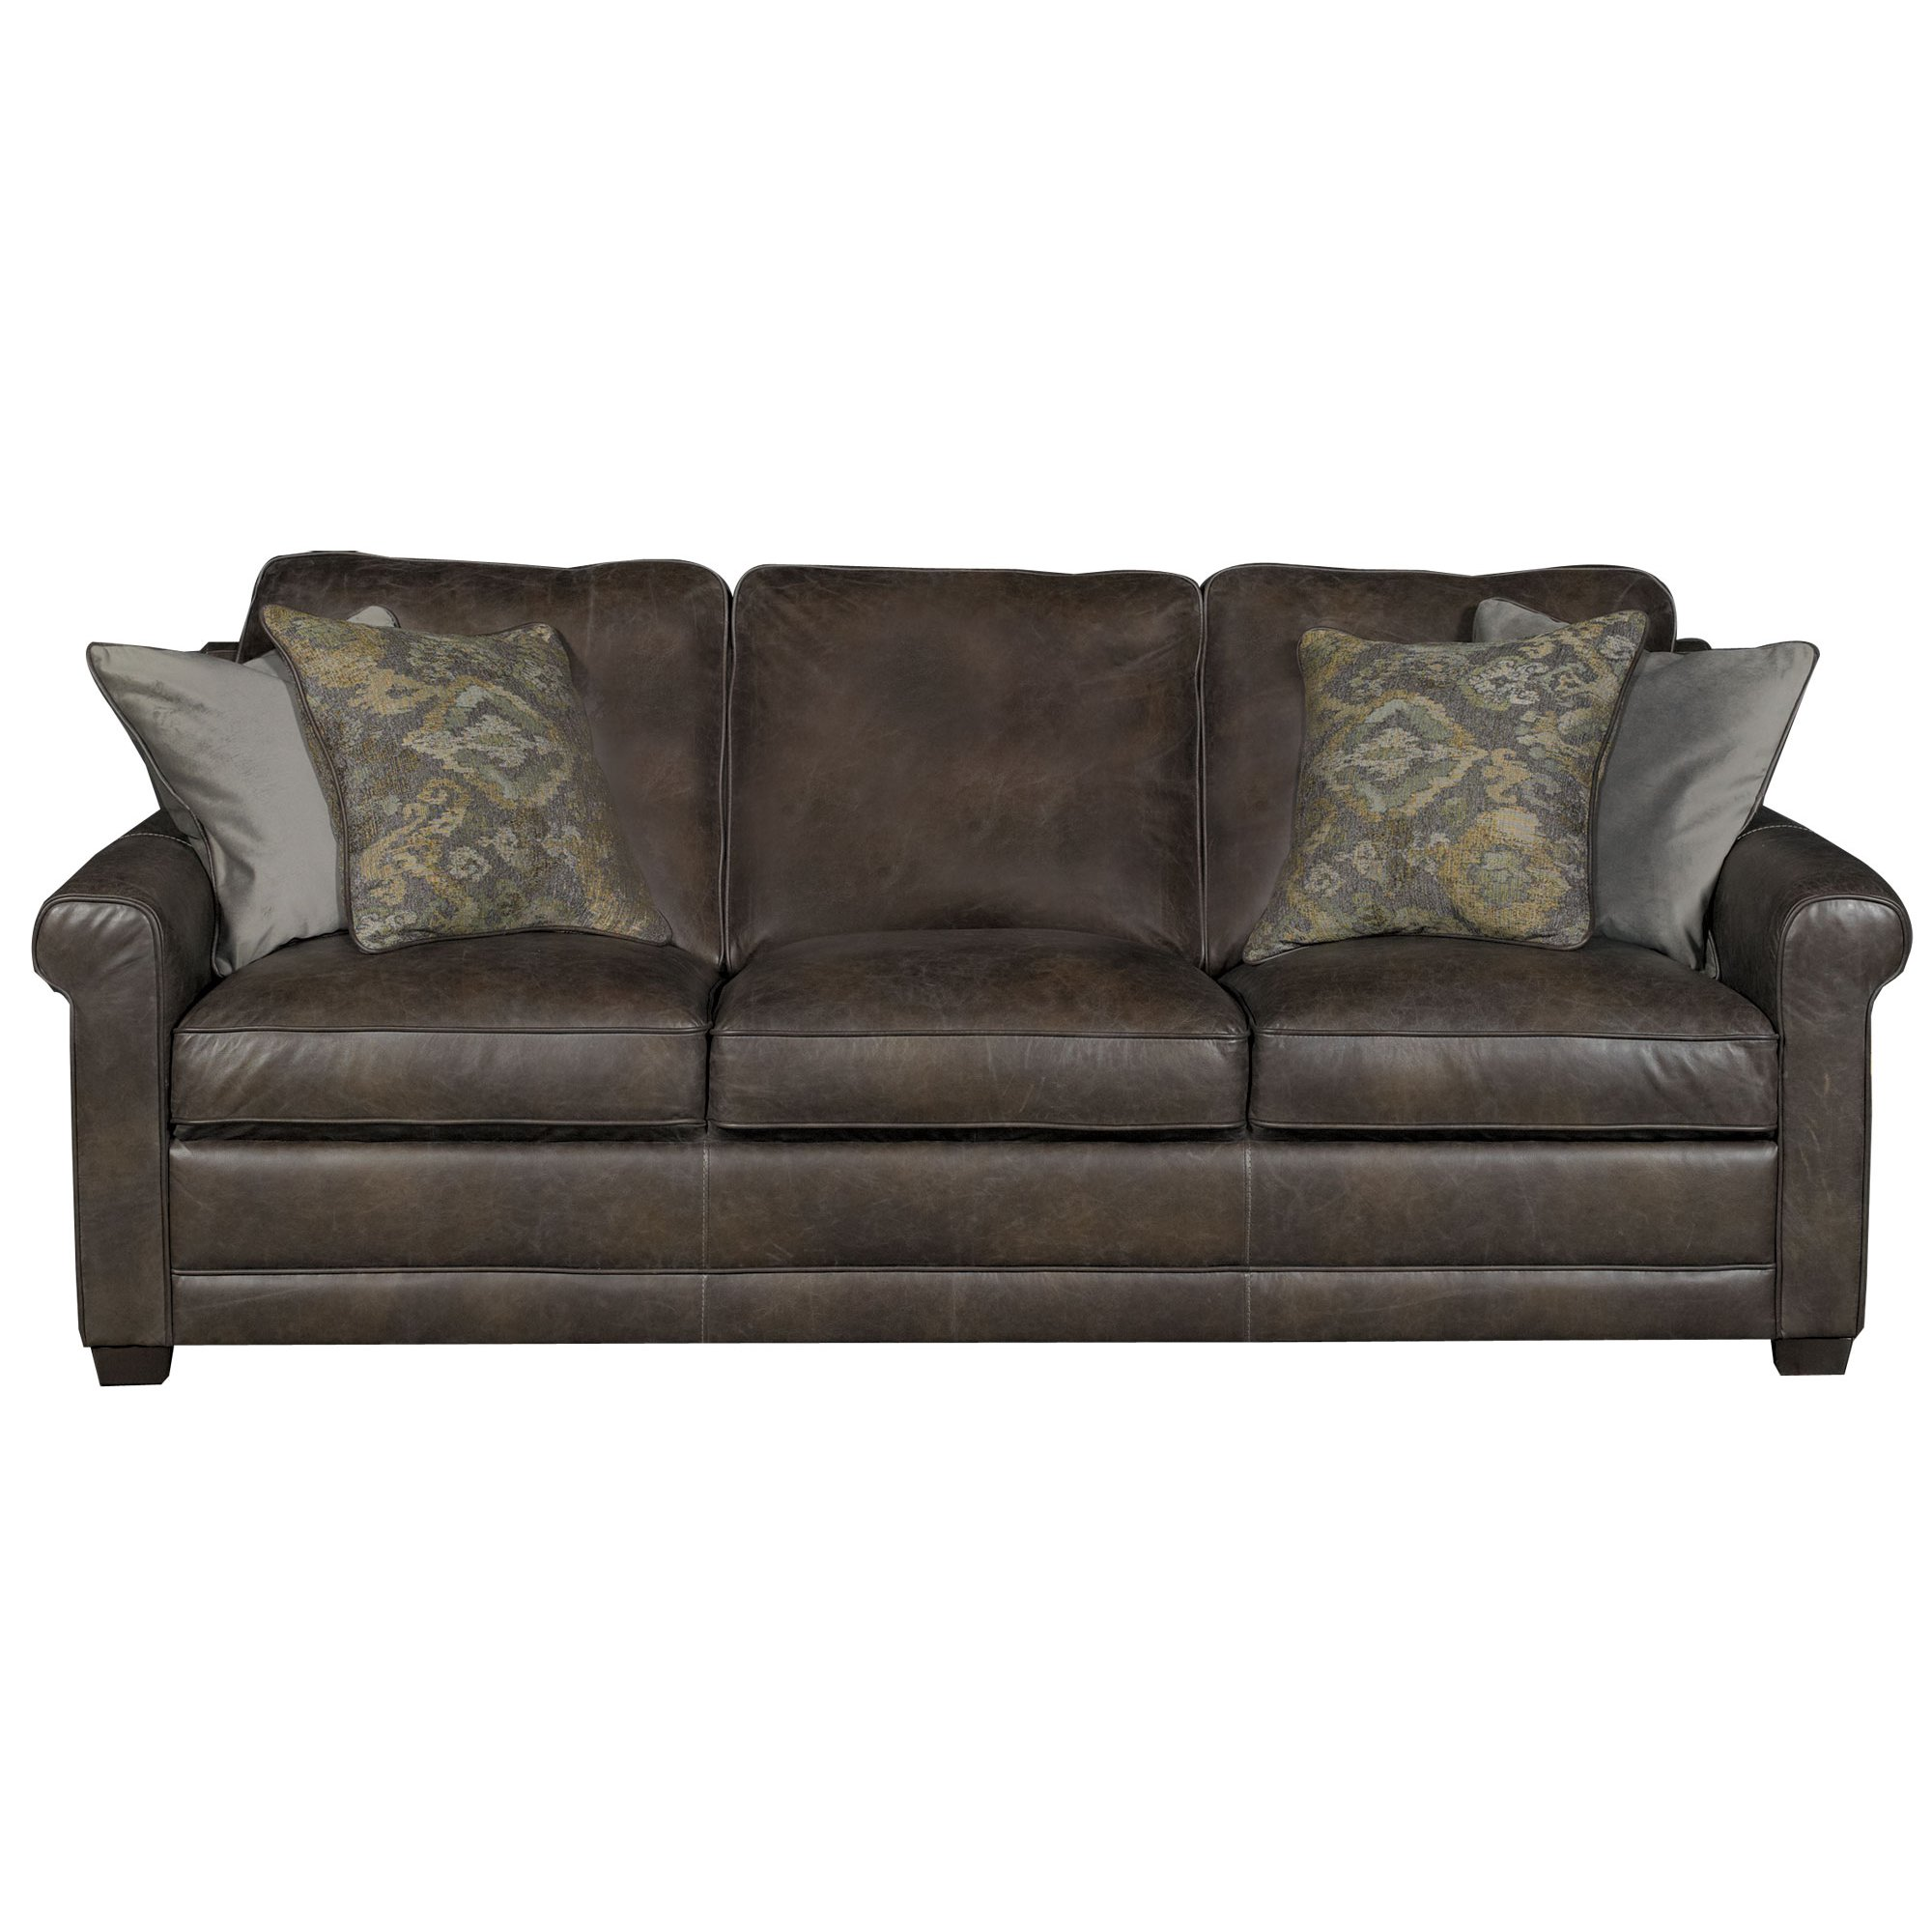 nicoletti lipari grey italian leather sofa chaise circle sectional bed stone kane s furniture sofas and couches